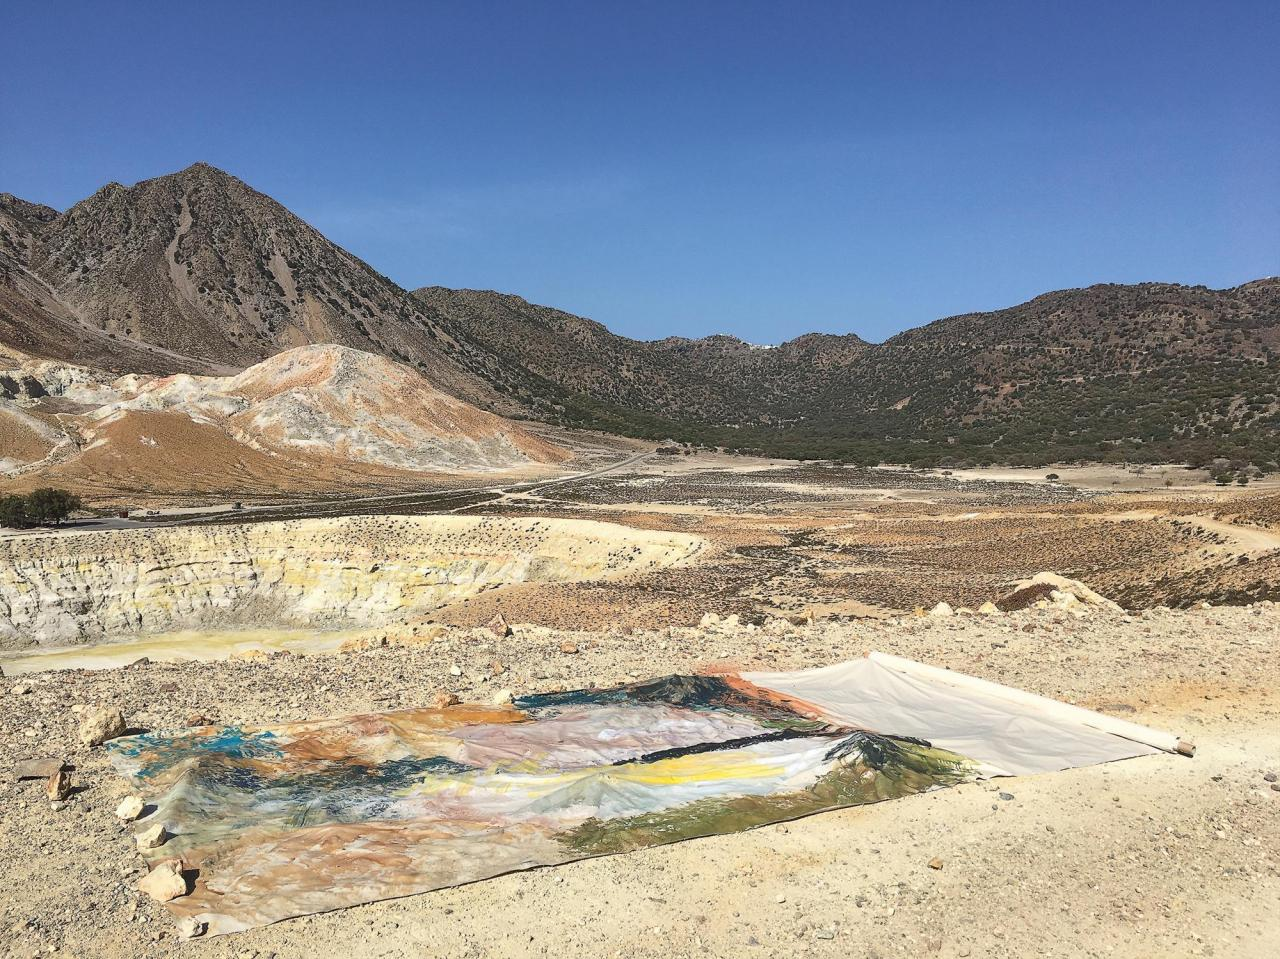 Vivian Suter, Above the crater Stephano end of October , in situ during her residency at Sterna Art Project, Nisyros, Greece, 2016